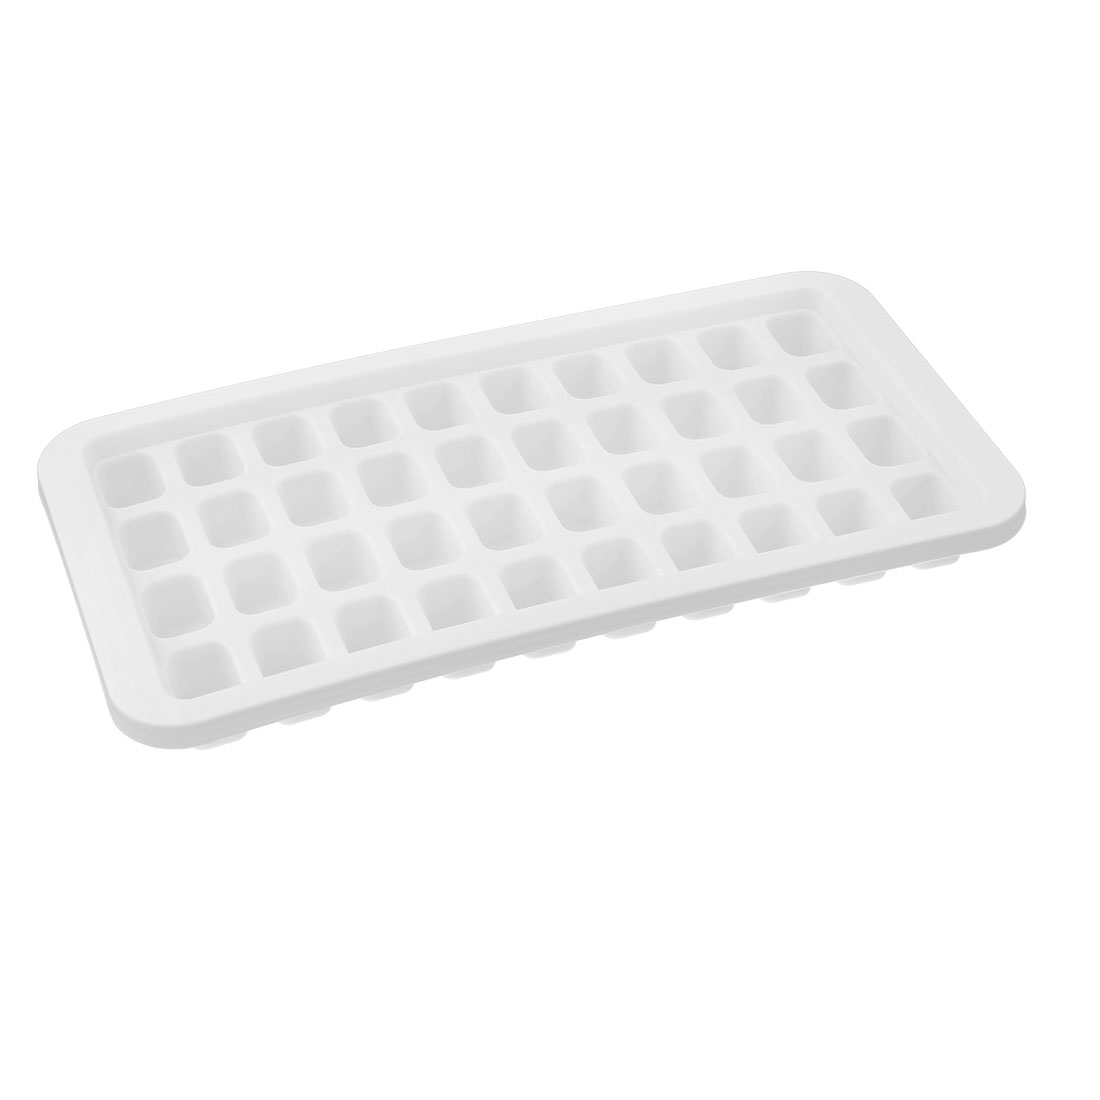 Home Plastic Rectangular 40 Compartment Ice Cube Tray Mould Mold White